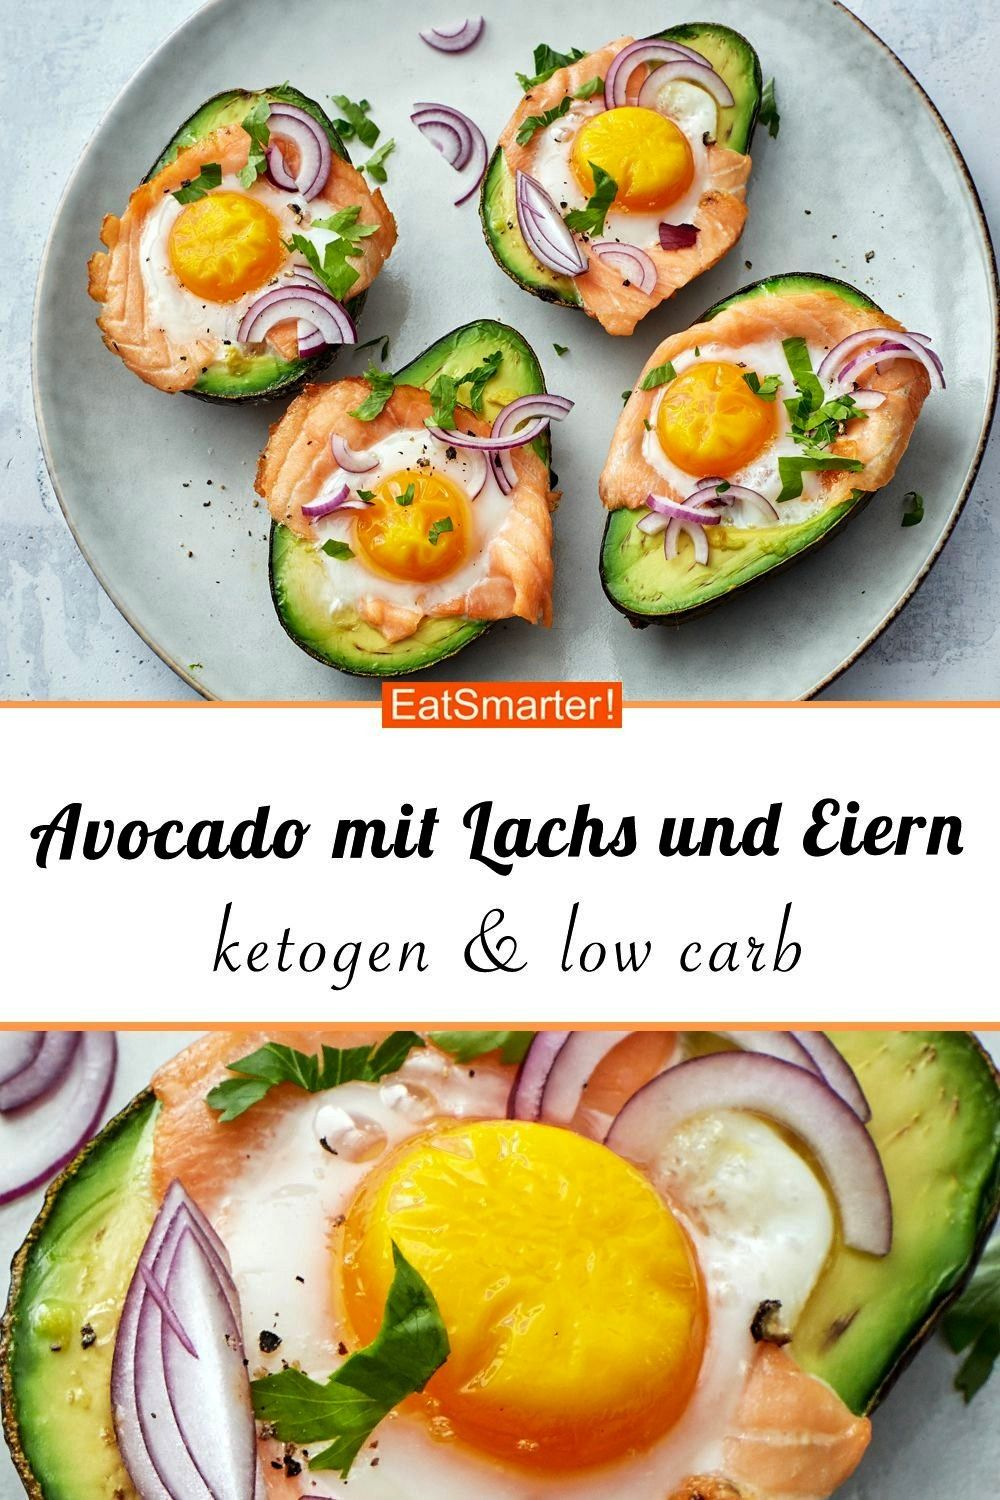 with salmon and eggs - smarter - calories: 295 kcal - time: 15 min. |  carbAvocado with salmon and